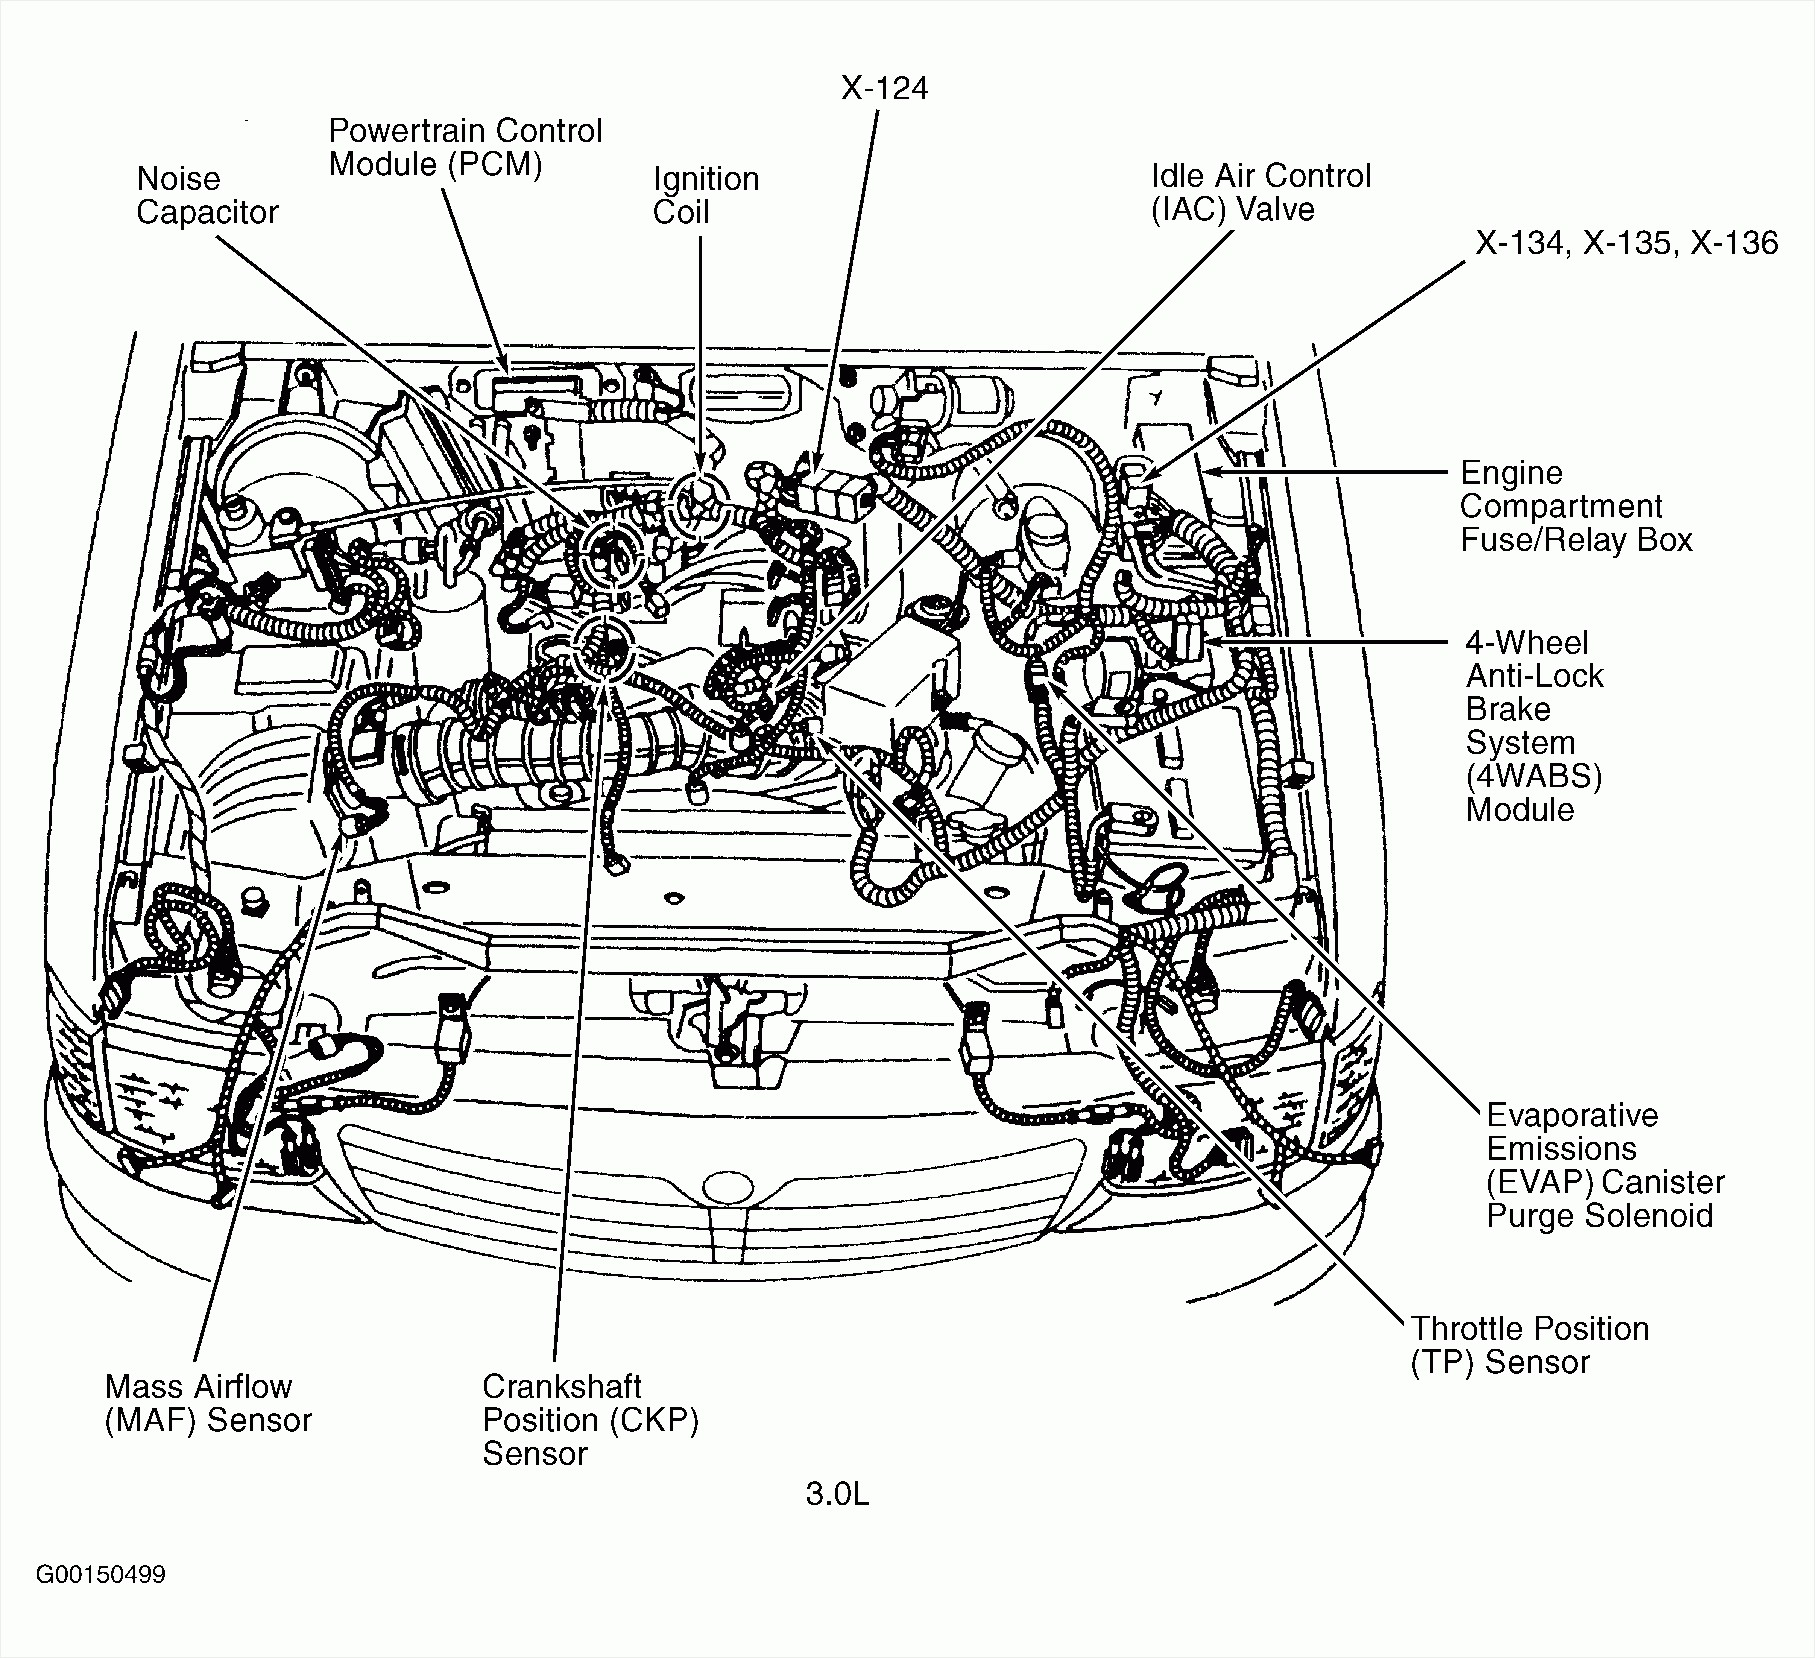 05 chrysler sebring engine diagram